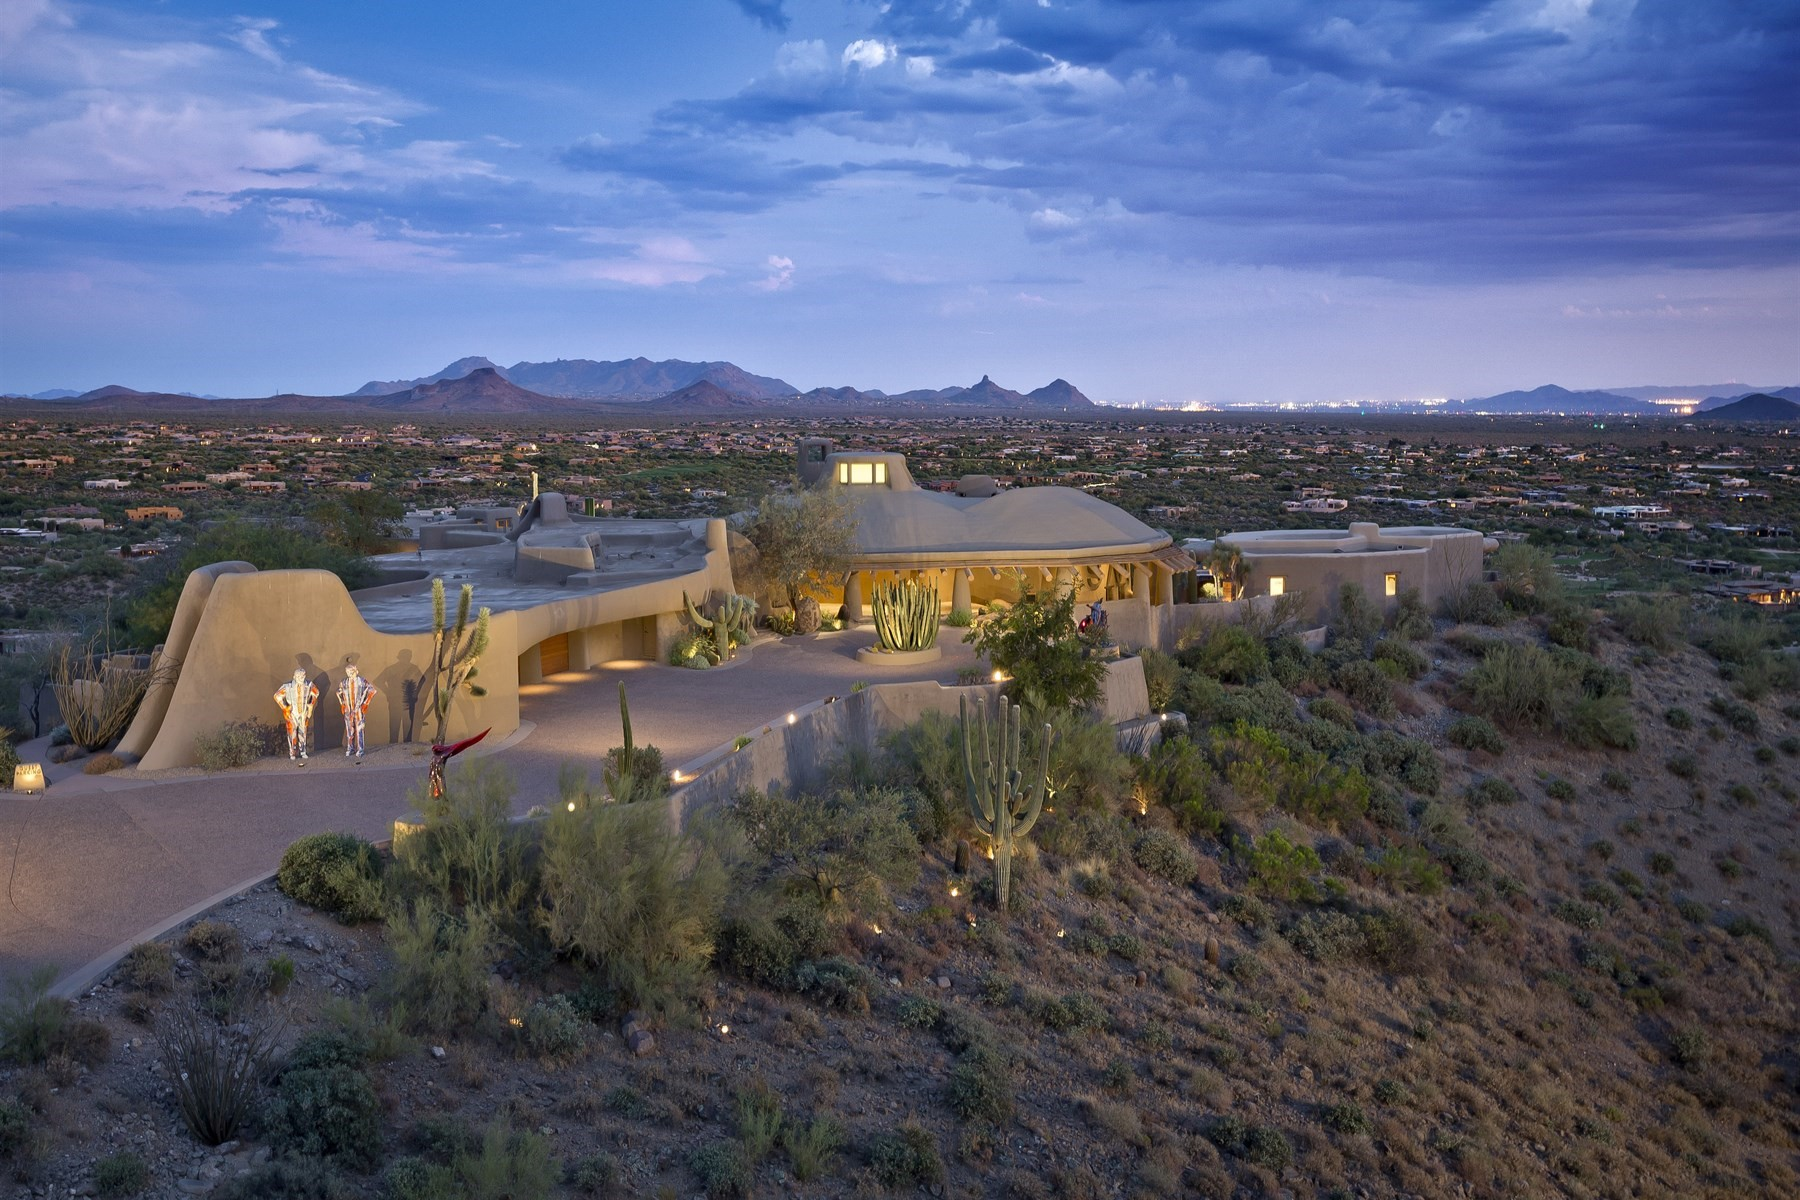 獨棟家庭住宅 為 出售 在 One-of-a-kind 15-acre estate that towers over the valley 39029 N Alister McKenzie Dr Scottsdale, 亞利桑那州, 85262 美國